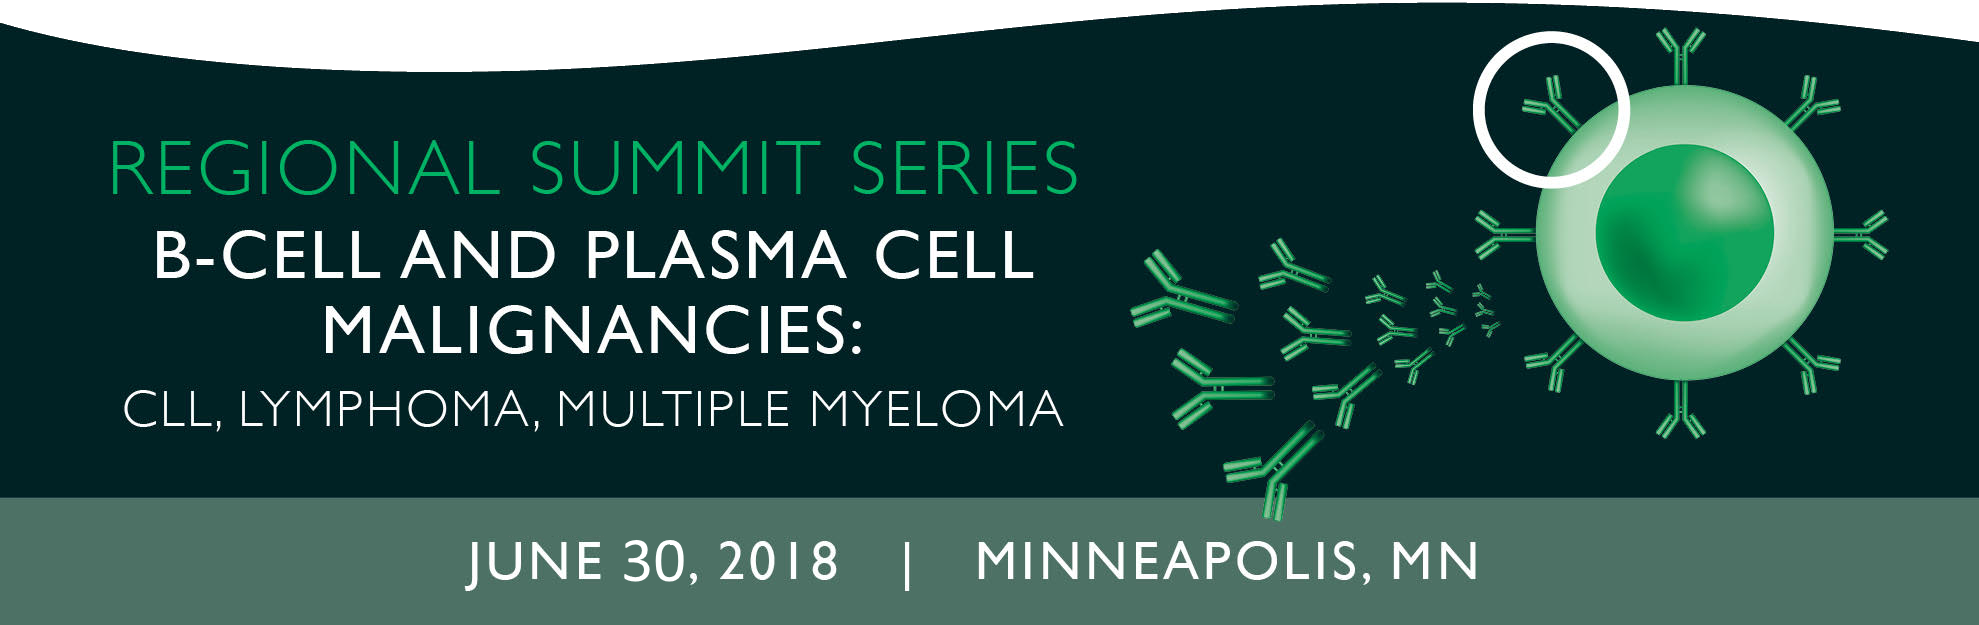 B-cell and Plasma Cell Malignancies Regional Summit - Minneapolis